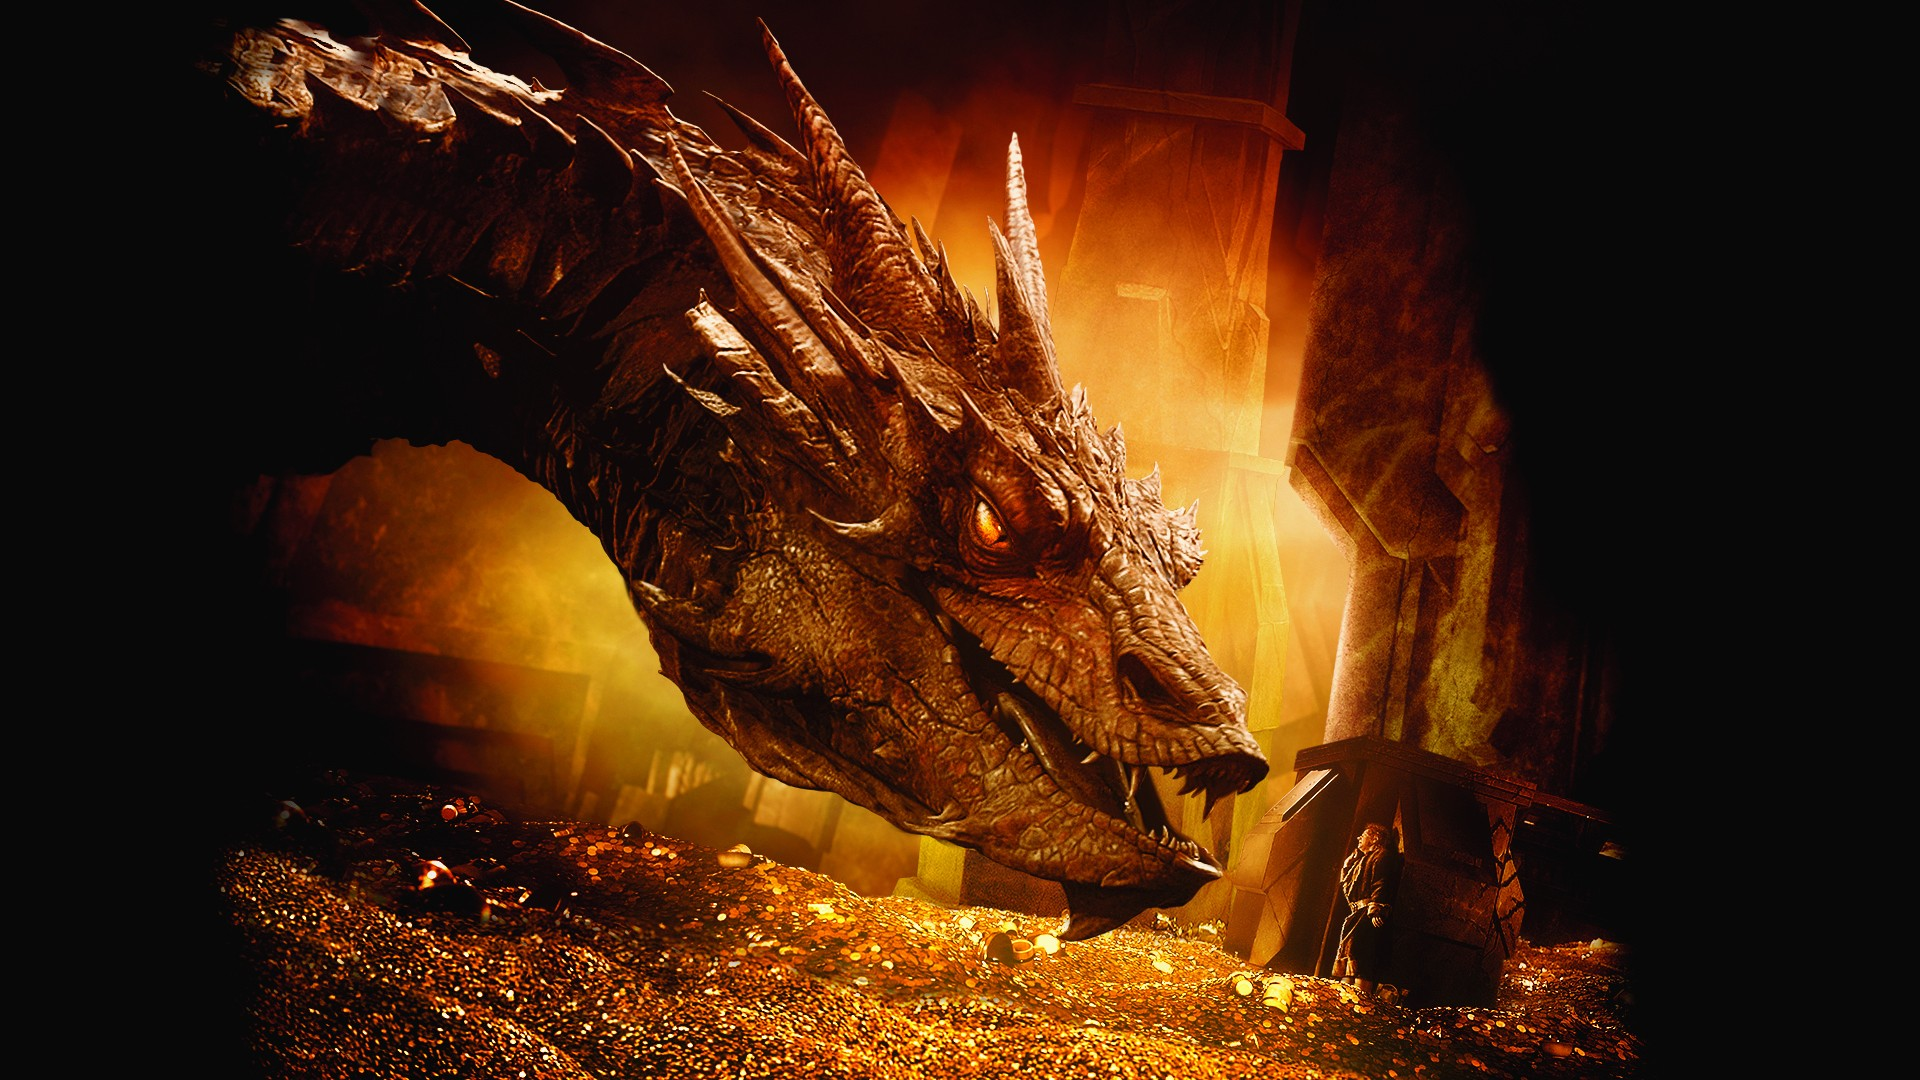 The Hobbit The Desolation of Smaug Wallpapers 1 2 1920x1080